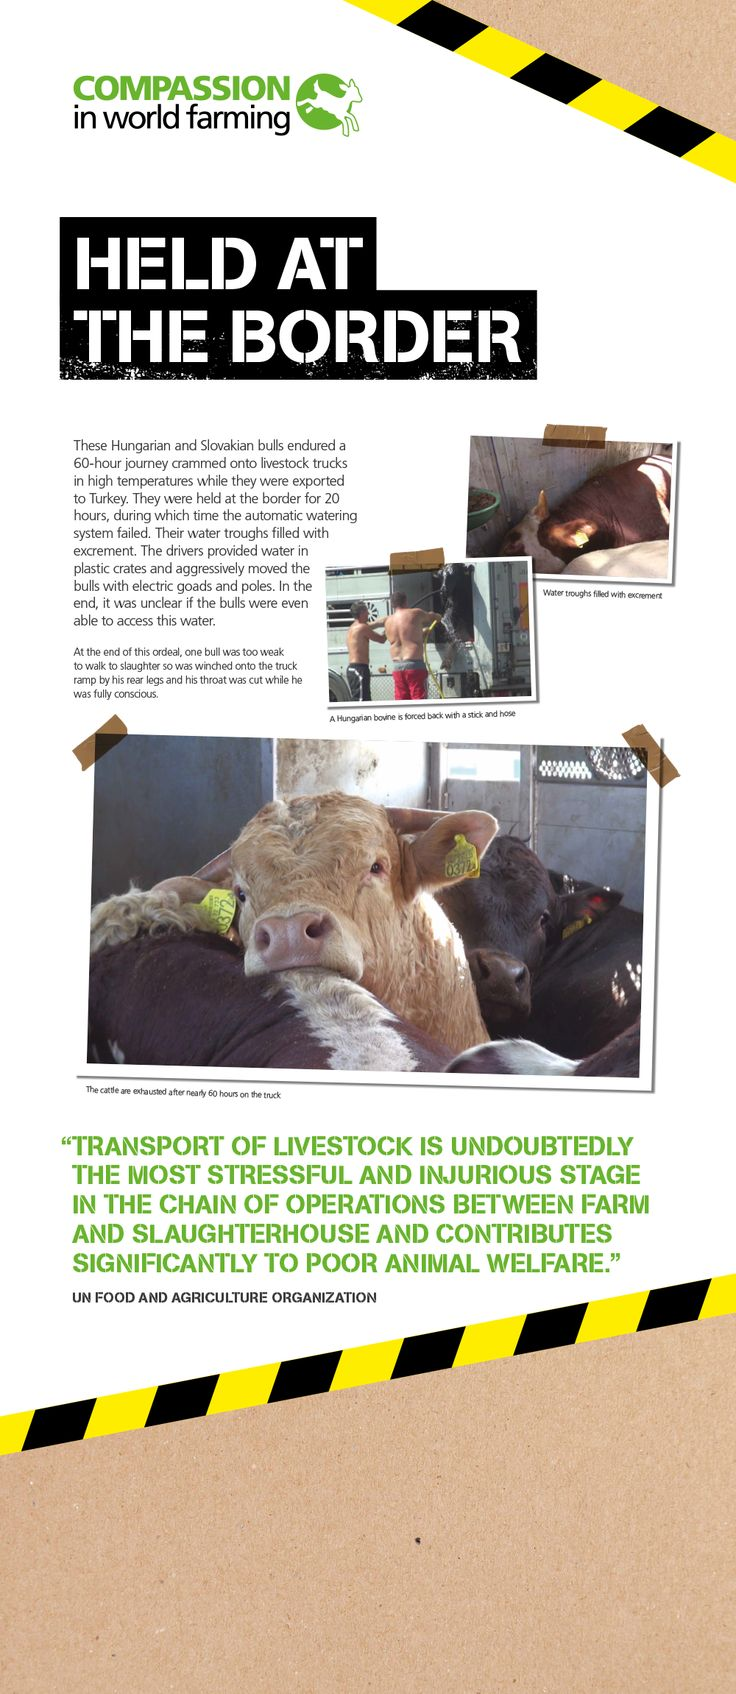 Compassion holds an exhibition at the European Parliament and shows MEPs why #liveexports must be stopped.